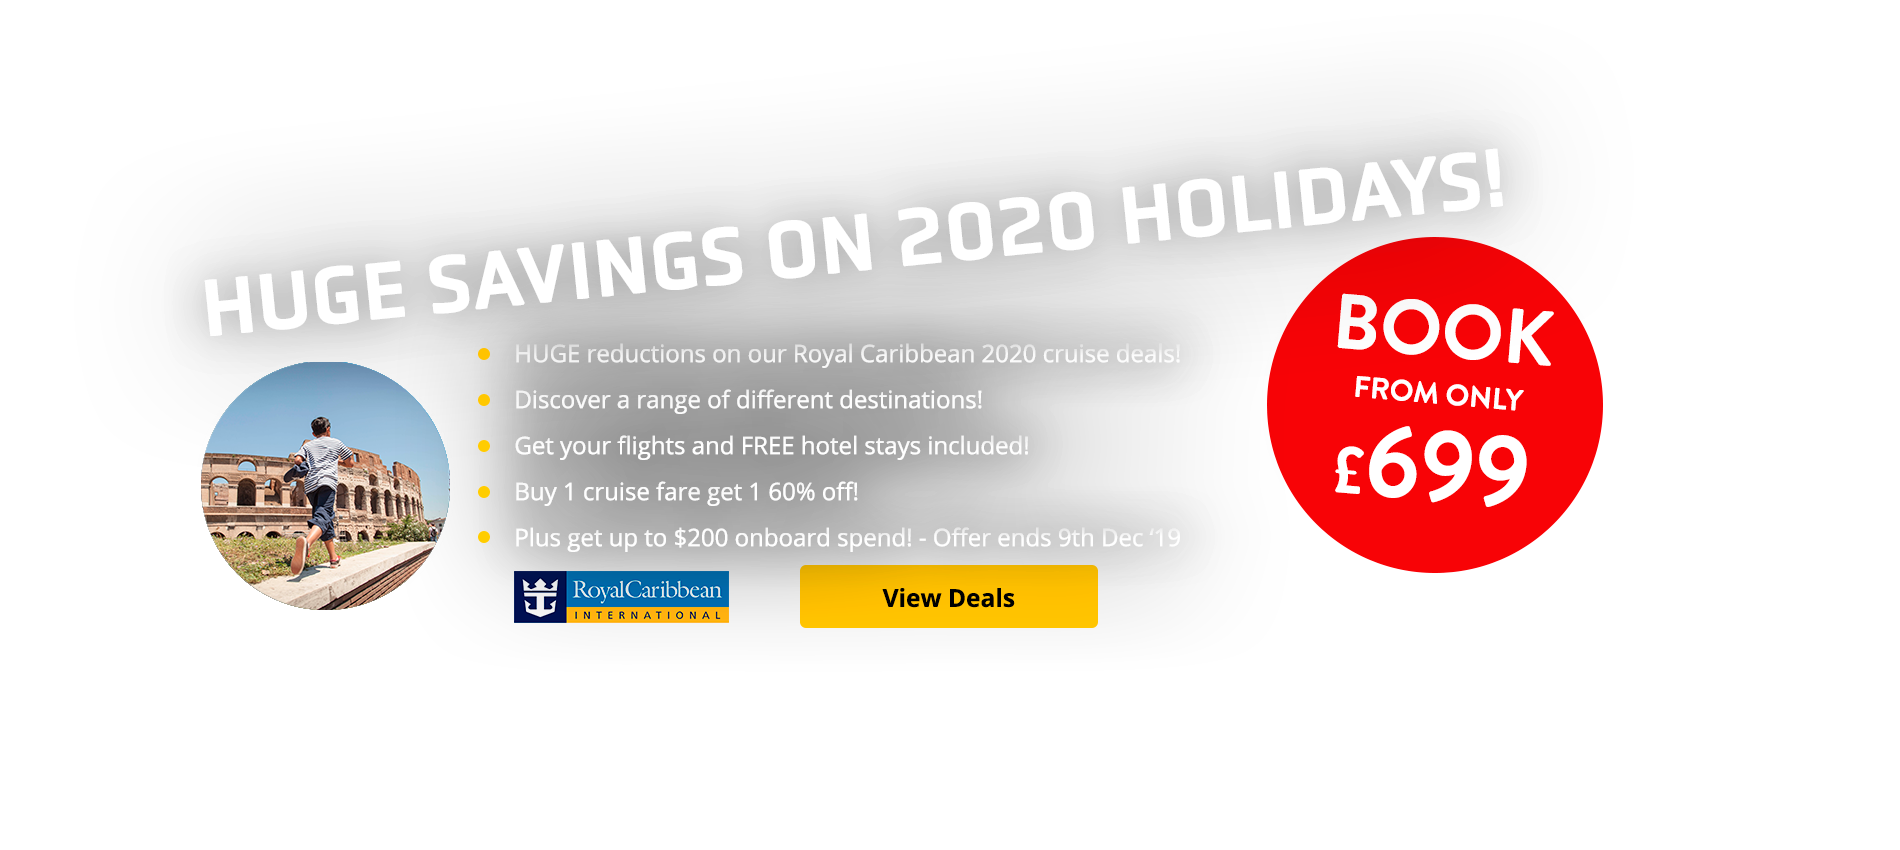 HUGE reductions on our Royal Caribbean 2020 cruise deals! Discover a range of different destinations! Get your flights and FREE hotel stays included! Buy 1 cruise fare get 1 60% off! Plus get up to $200 onboard spend! - Offer ends 9th Dec '19